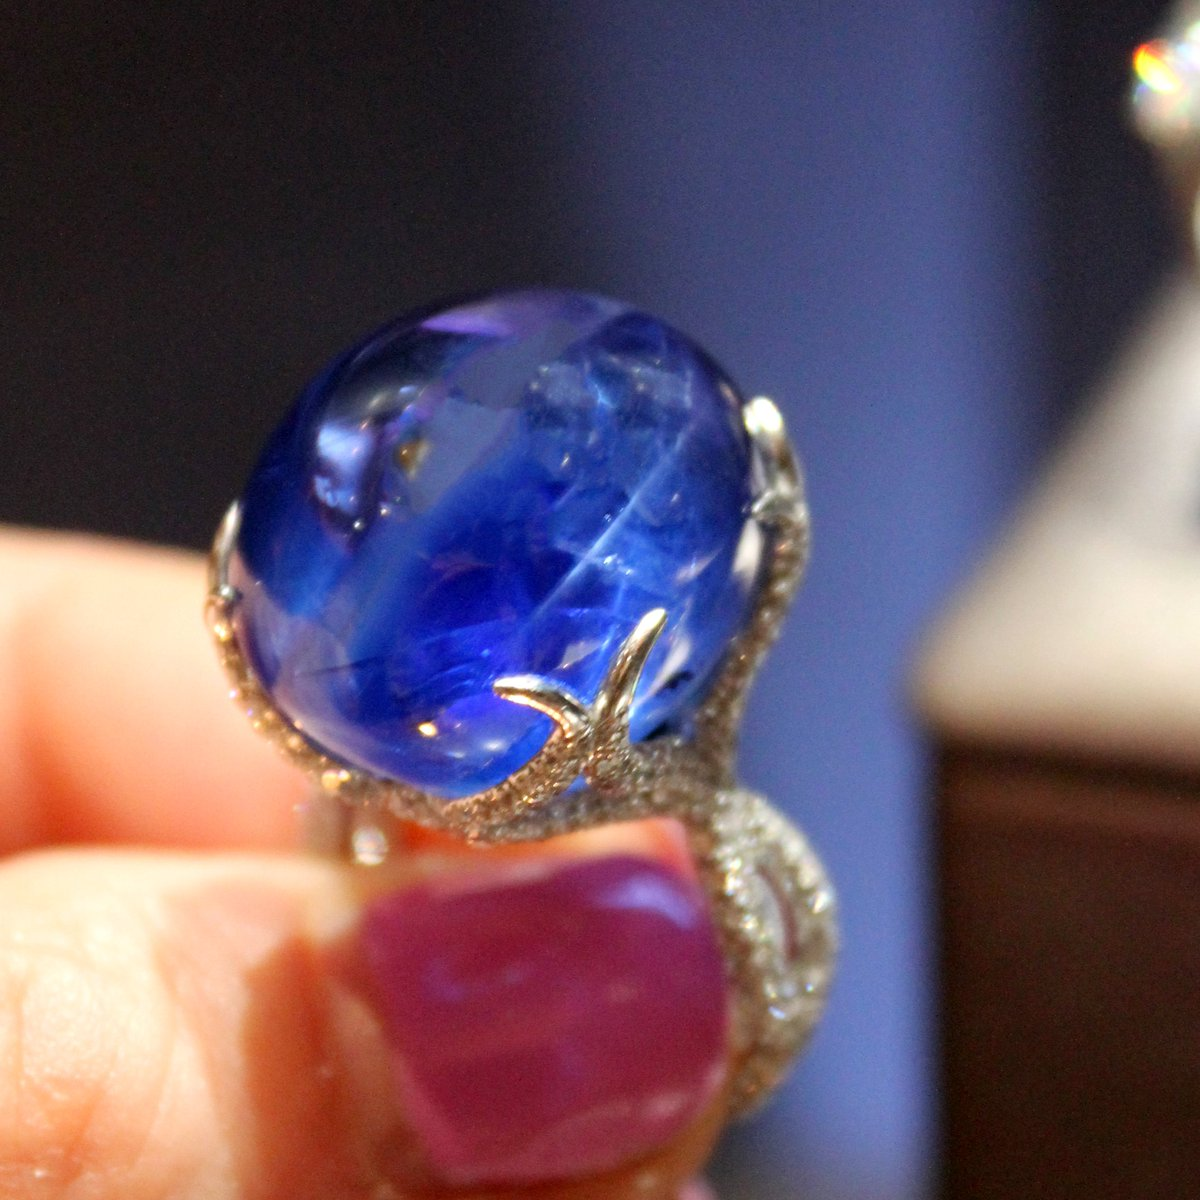 gemstones jewelry carats image ring natural sapphire estate burmese colored untreated burma